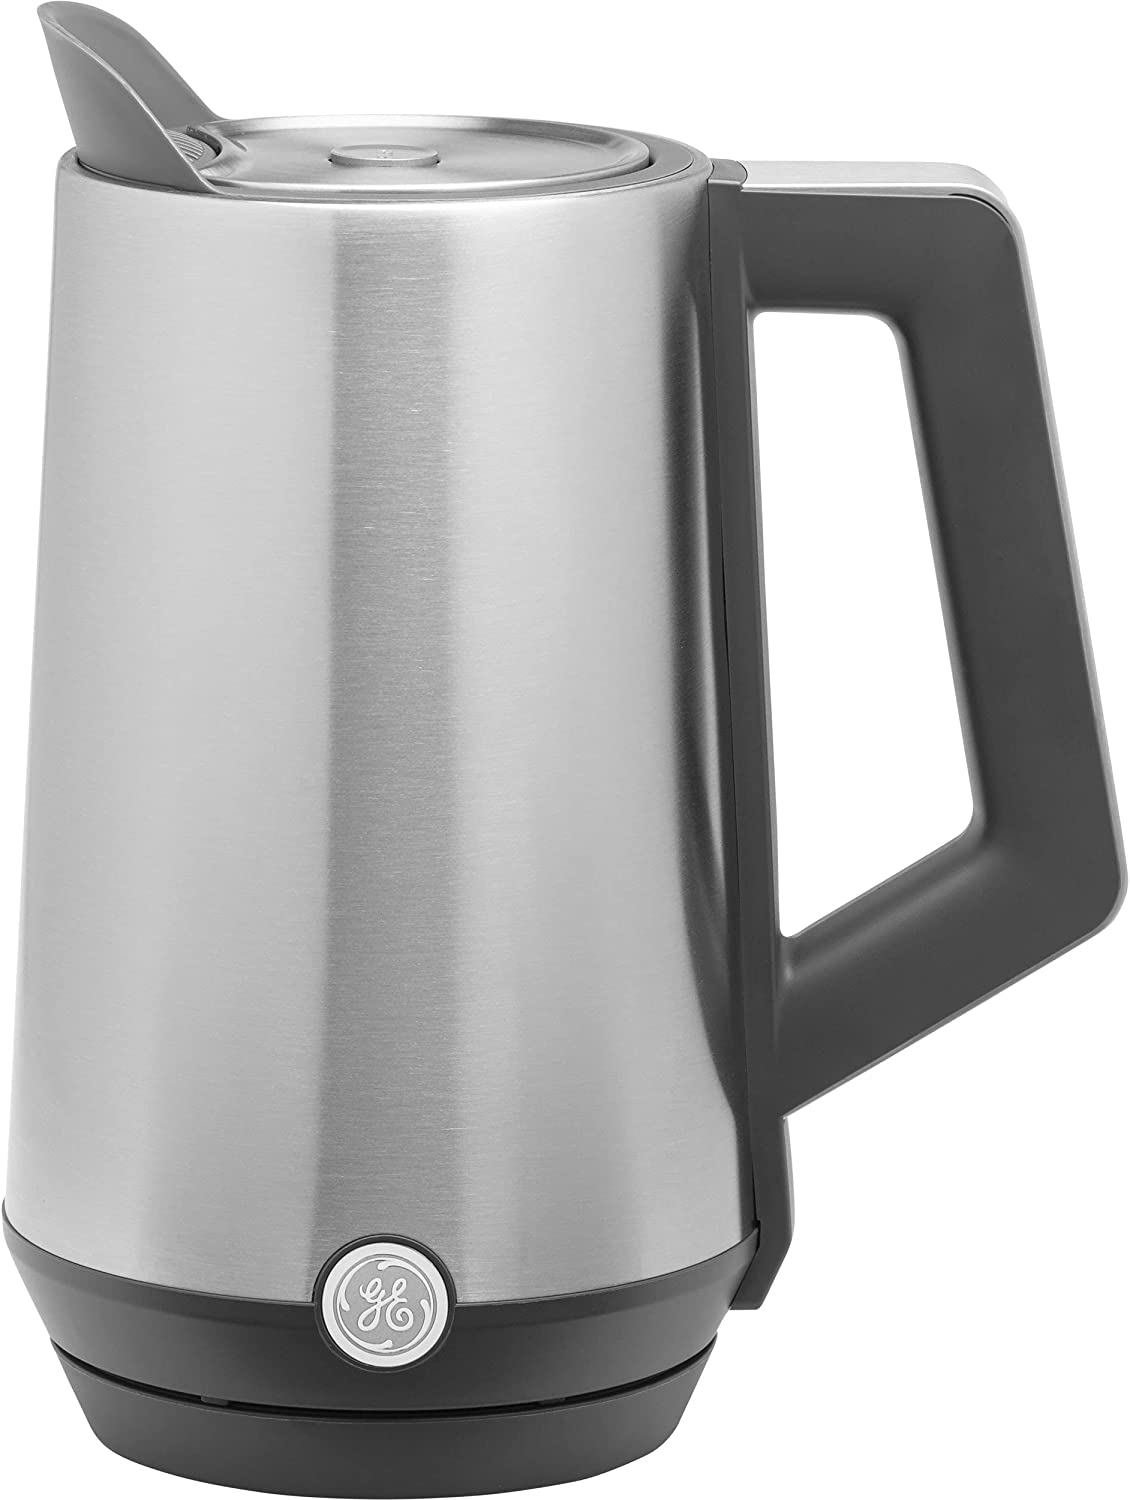 High quality GE Cool Touch Kettle with Sales results No. 1 Digital Liter Insulated 1.5 Controls